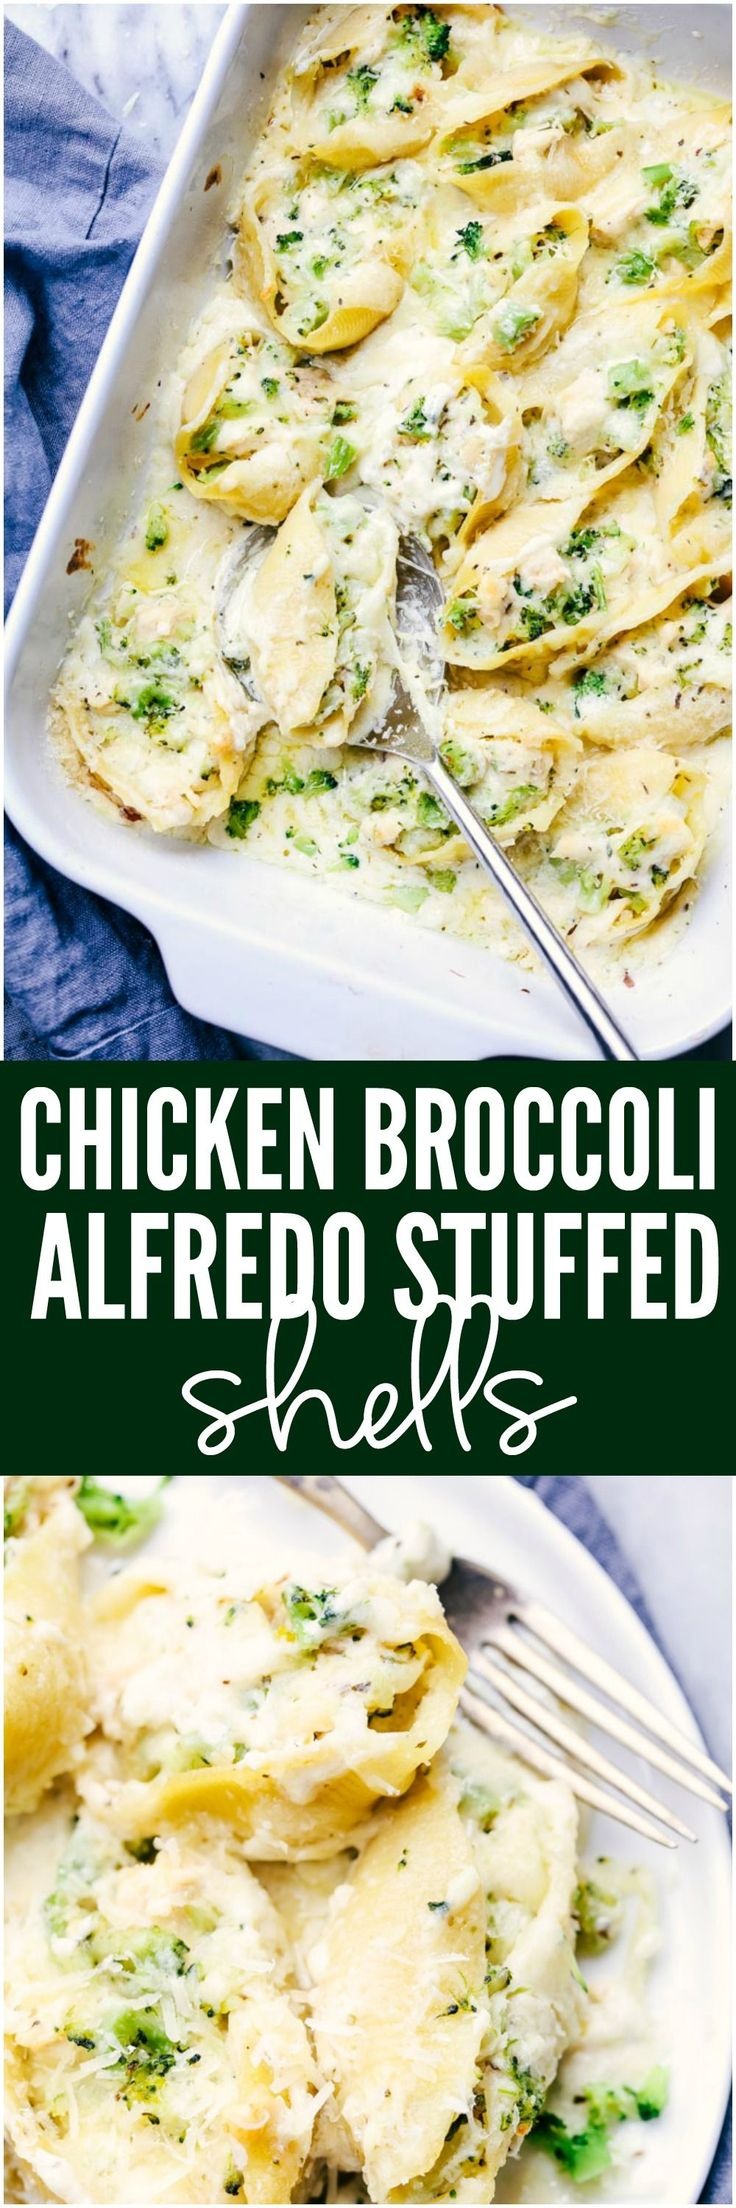 Chicken Broccoli Garlic Alfredo Shells are stuffed with tender chicken, cheese, broccoli, and homemade alfredo sauce. These shells are creamy, cheesy and out of this world delicious! #chickenbroccoli